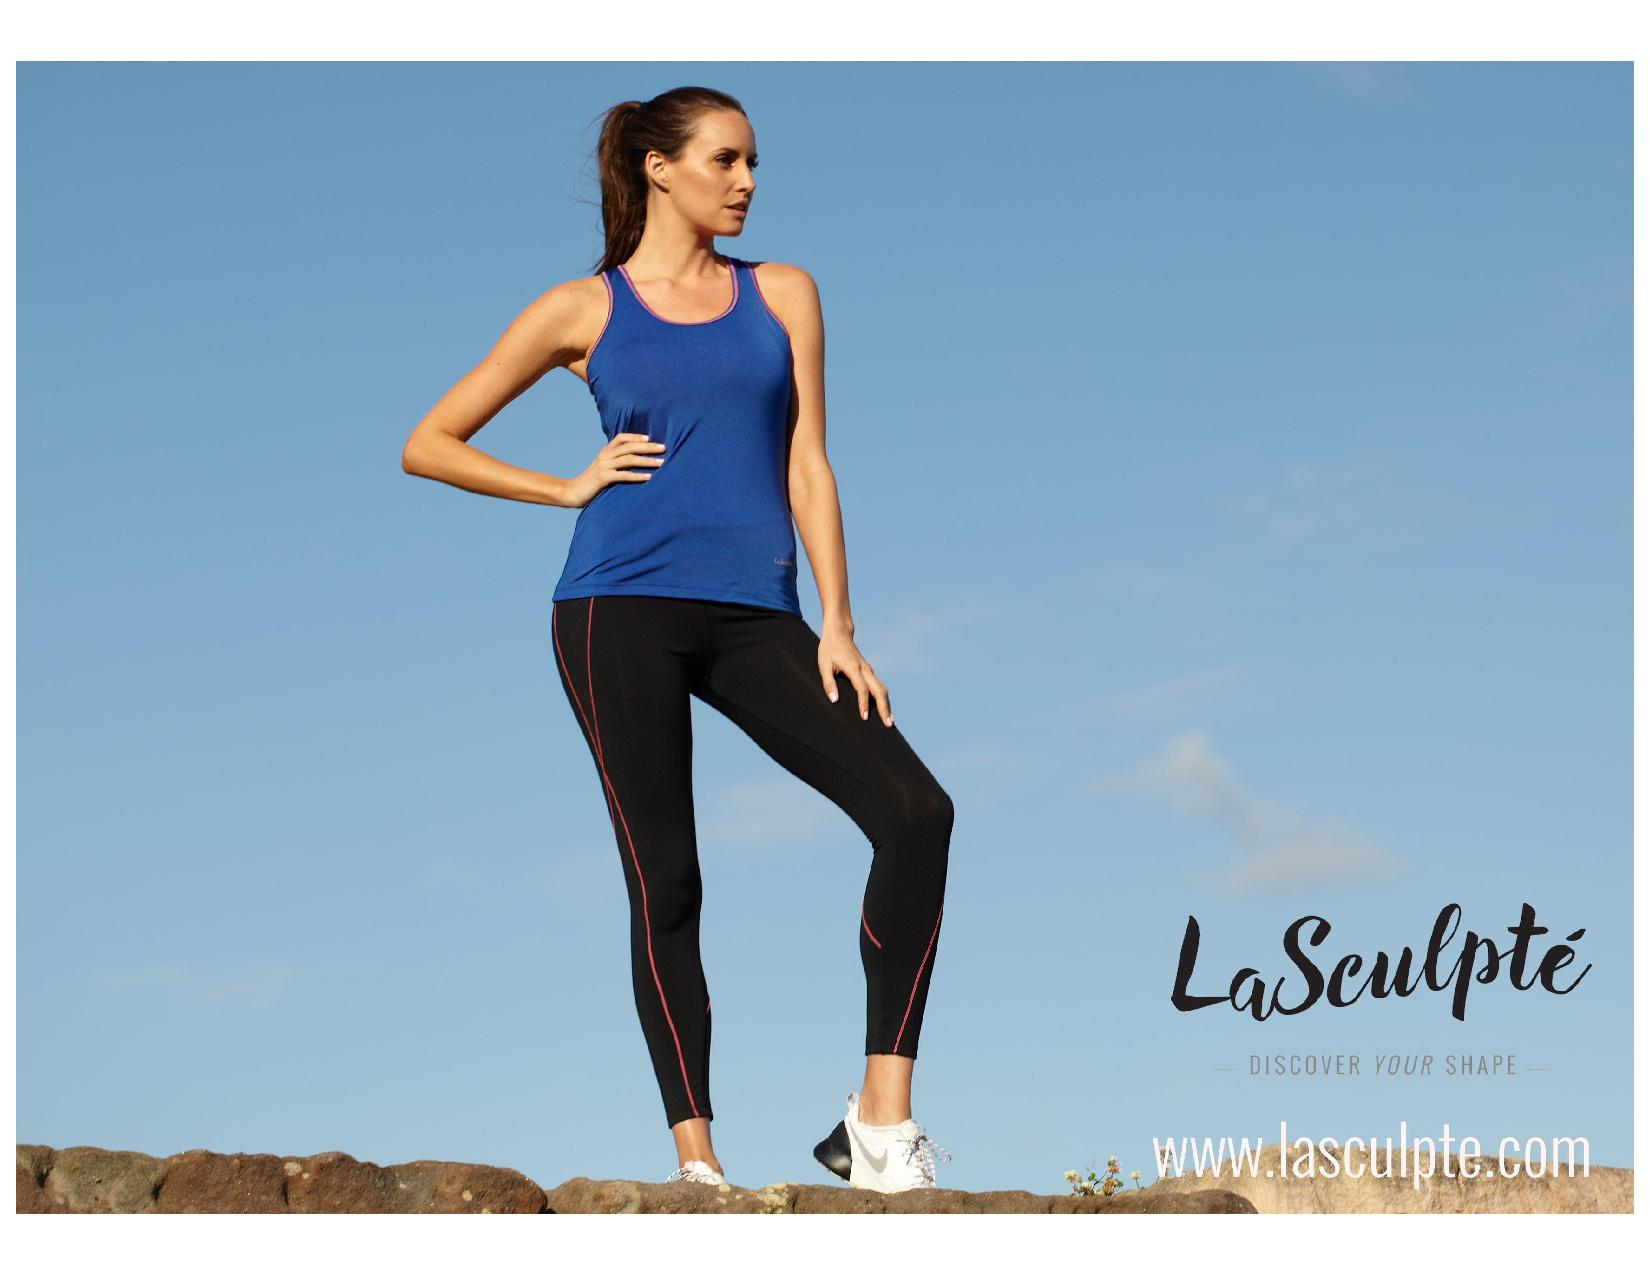 Active lookbook-outdoor images-page-009